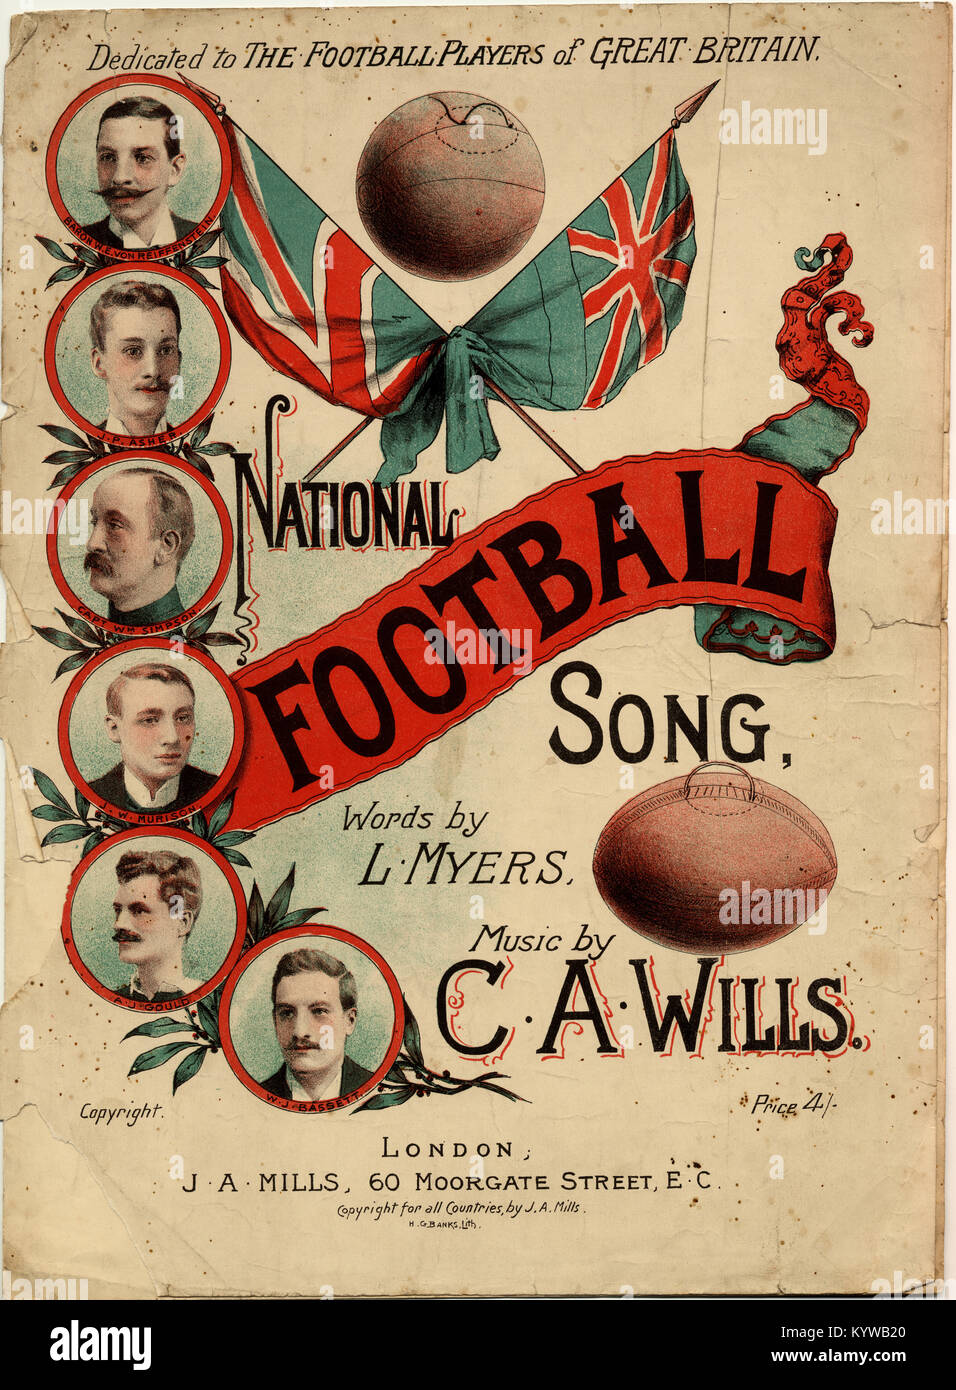 National Football Song-Dedicated to the Football Peers of Great Britain - Stock Image